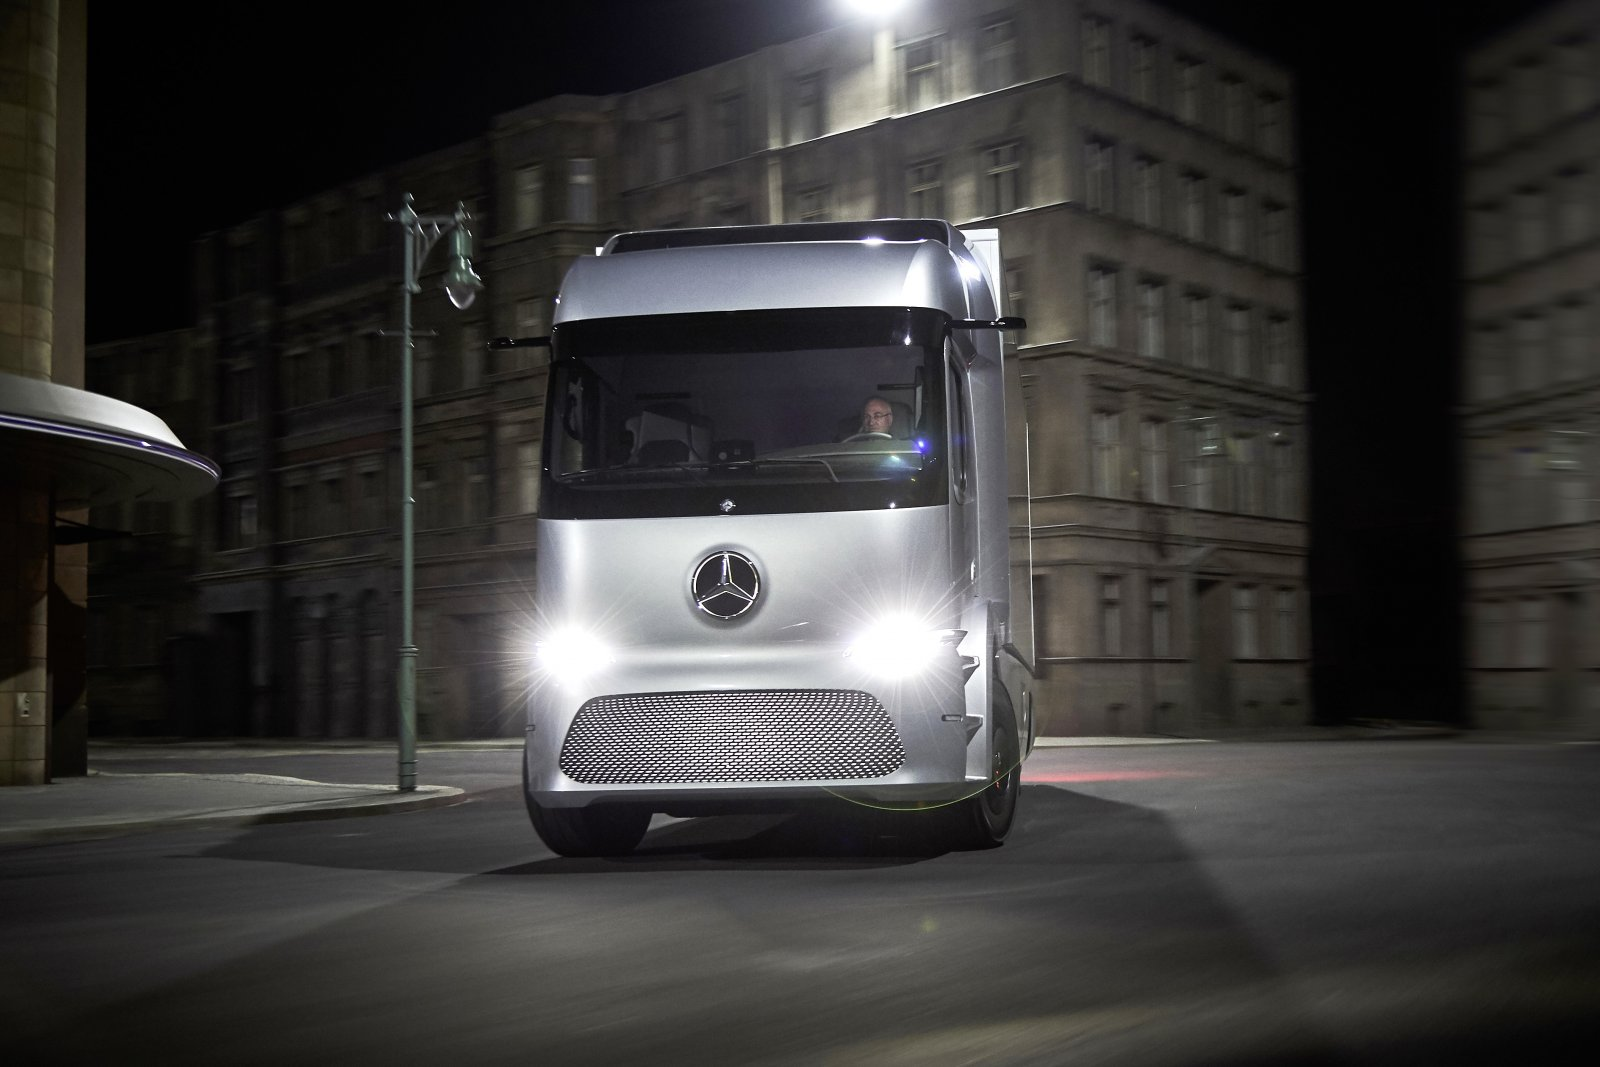 Mercedes-Benz urban eTruck, Exterieur, Silver Arrow metallic, dreiachsiger Verteiler-Lkw, 2 x 125 kW, 2 x 500 Nm, 3 Module Lithium-Ionen-Batterien, Gesamtkapazität: 212 kWh, elektrisch angetriebene Hinterachse, Reichweite: bis zu 200 km, zul. Gesamtgewicht: 26 t Mercedes-Benz urban eTruck, Exterior, silver arrow metallic, three-axle short-radius distribution truck, 2 x 125 kW, 2 x 500 Nm, 3 modules of lithium-ion batteries, total capacity: 212 kWh, electrically driven rear axle, operating range: up to 200 km, permissible gross vehicle weight: 26 t